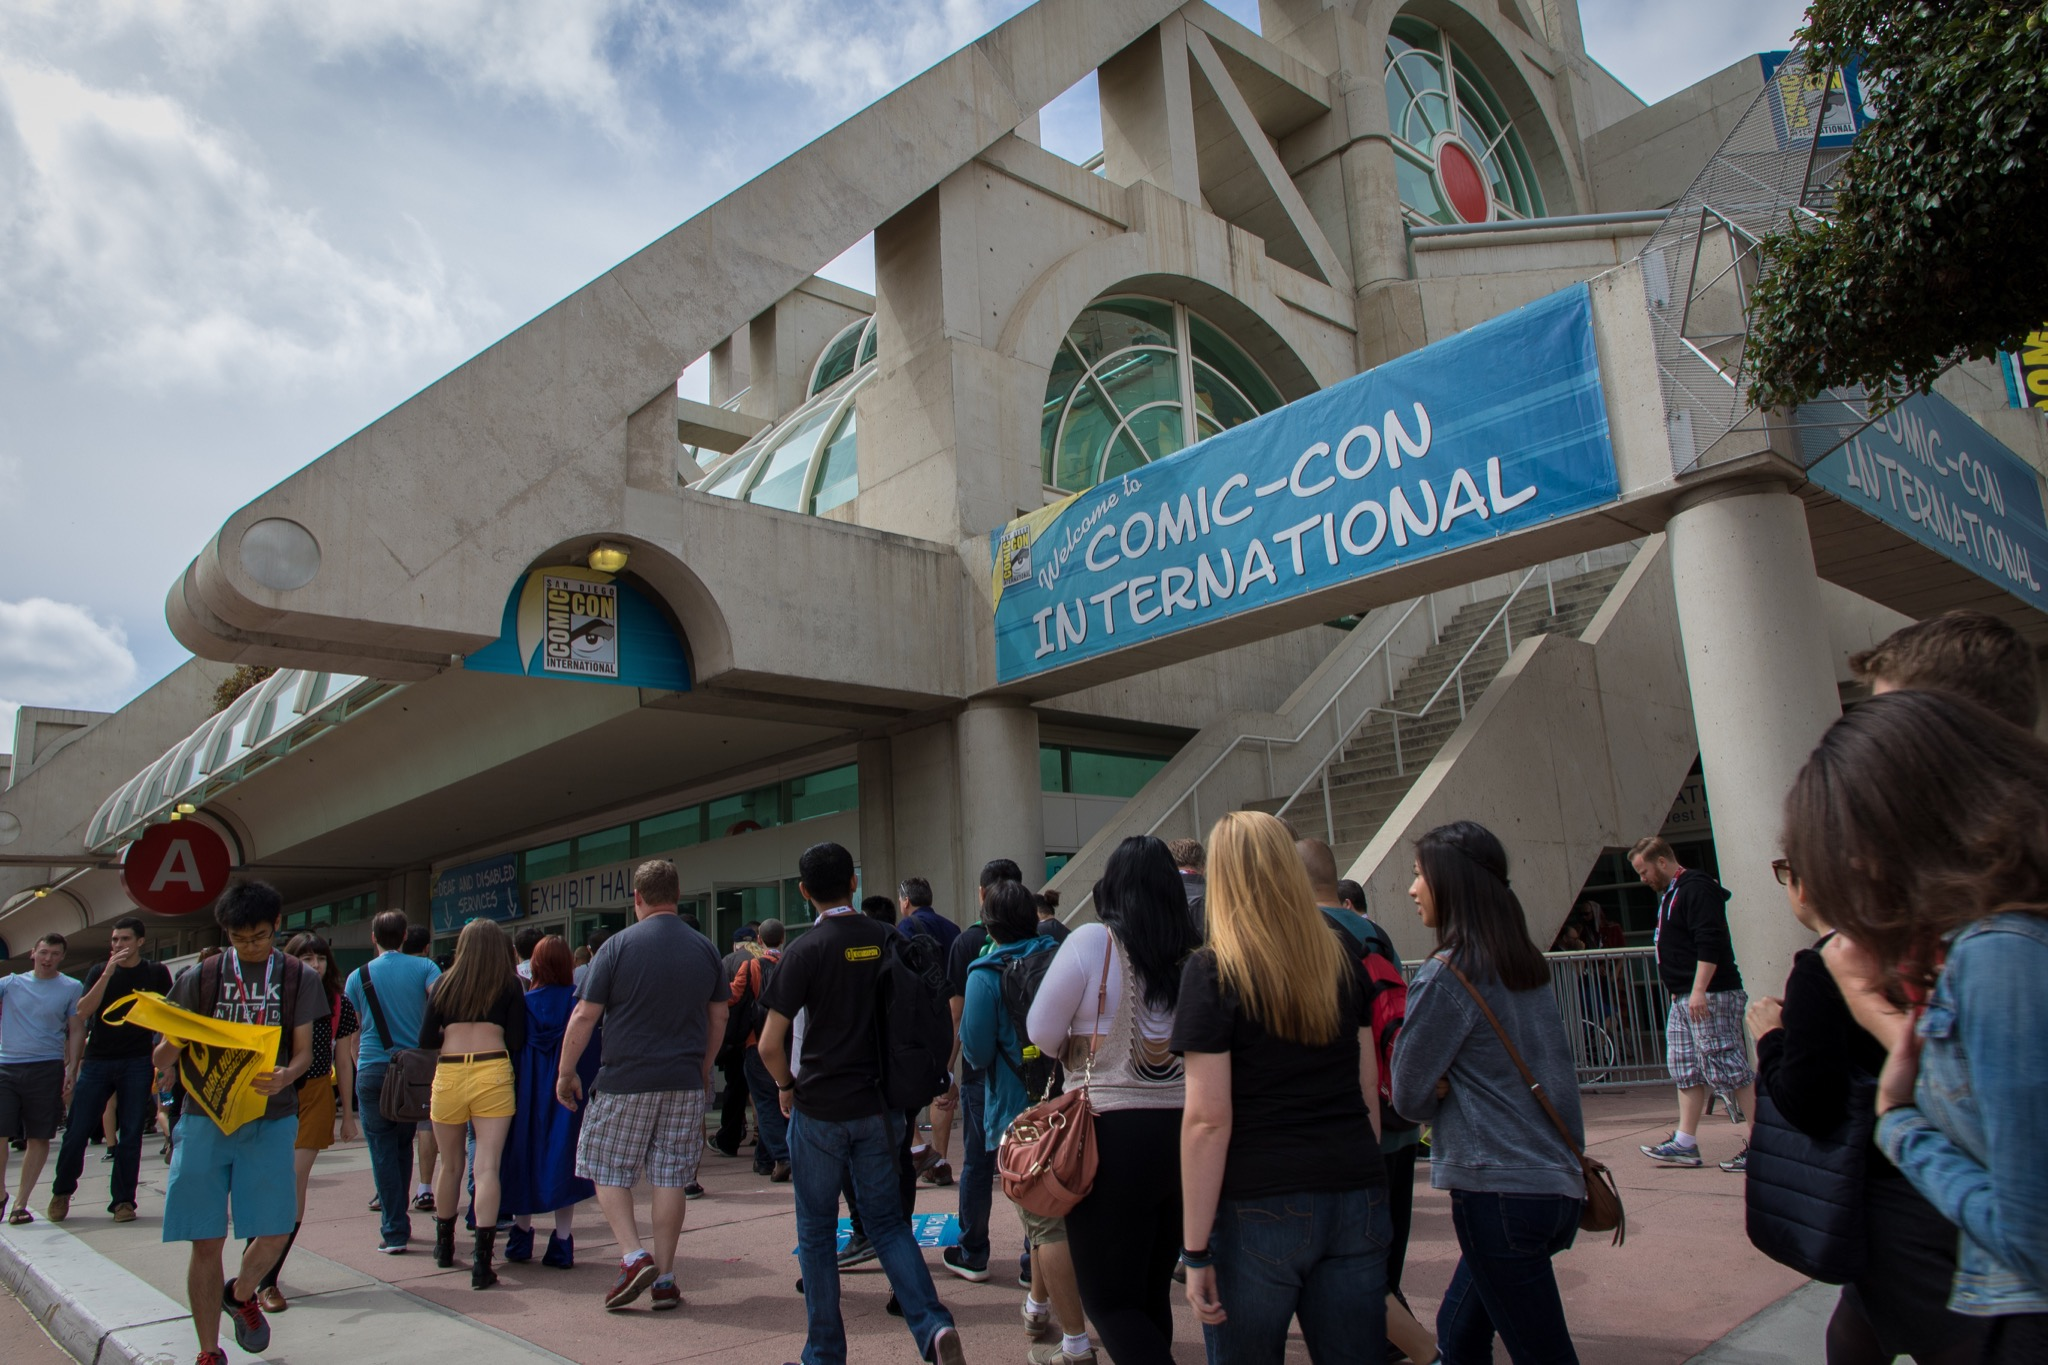 Top 5 Stereotypes Who Attend Comic-Con